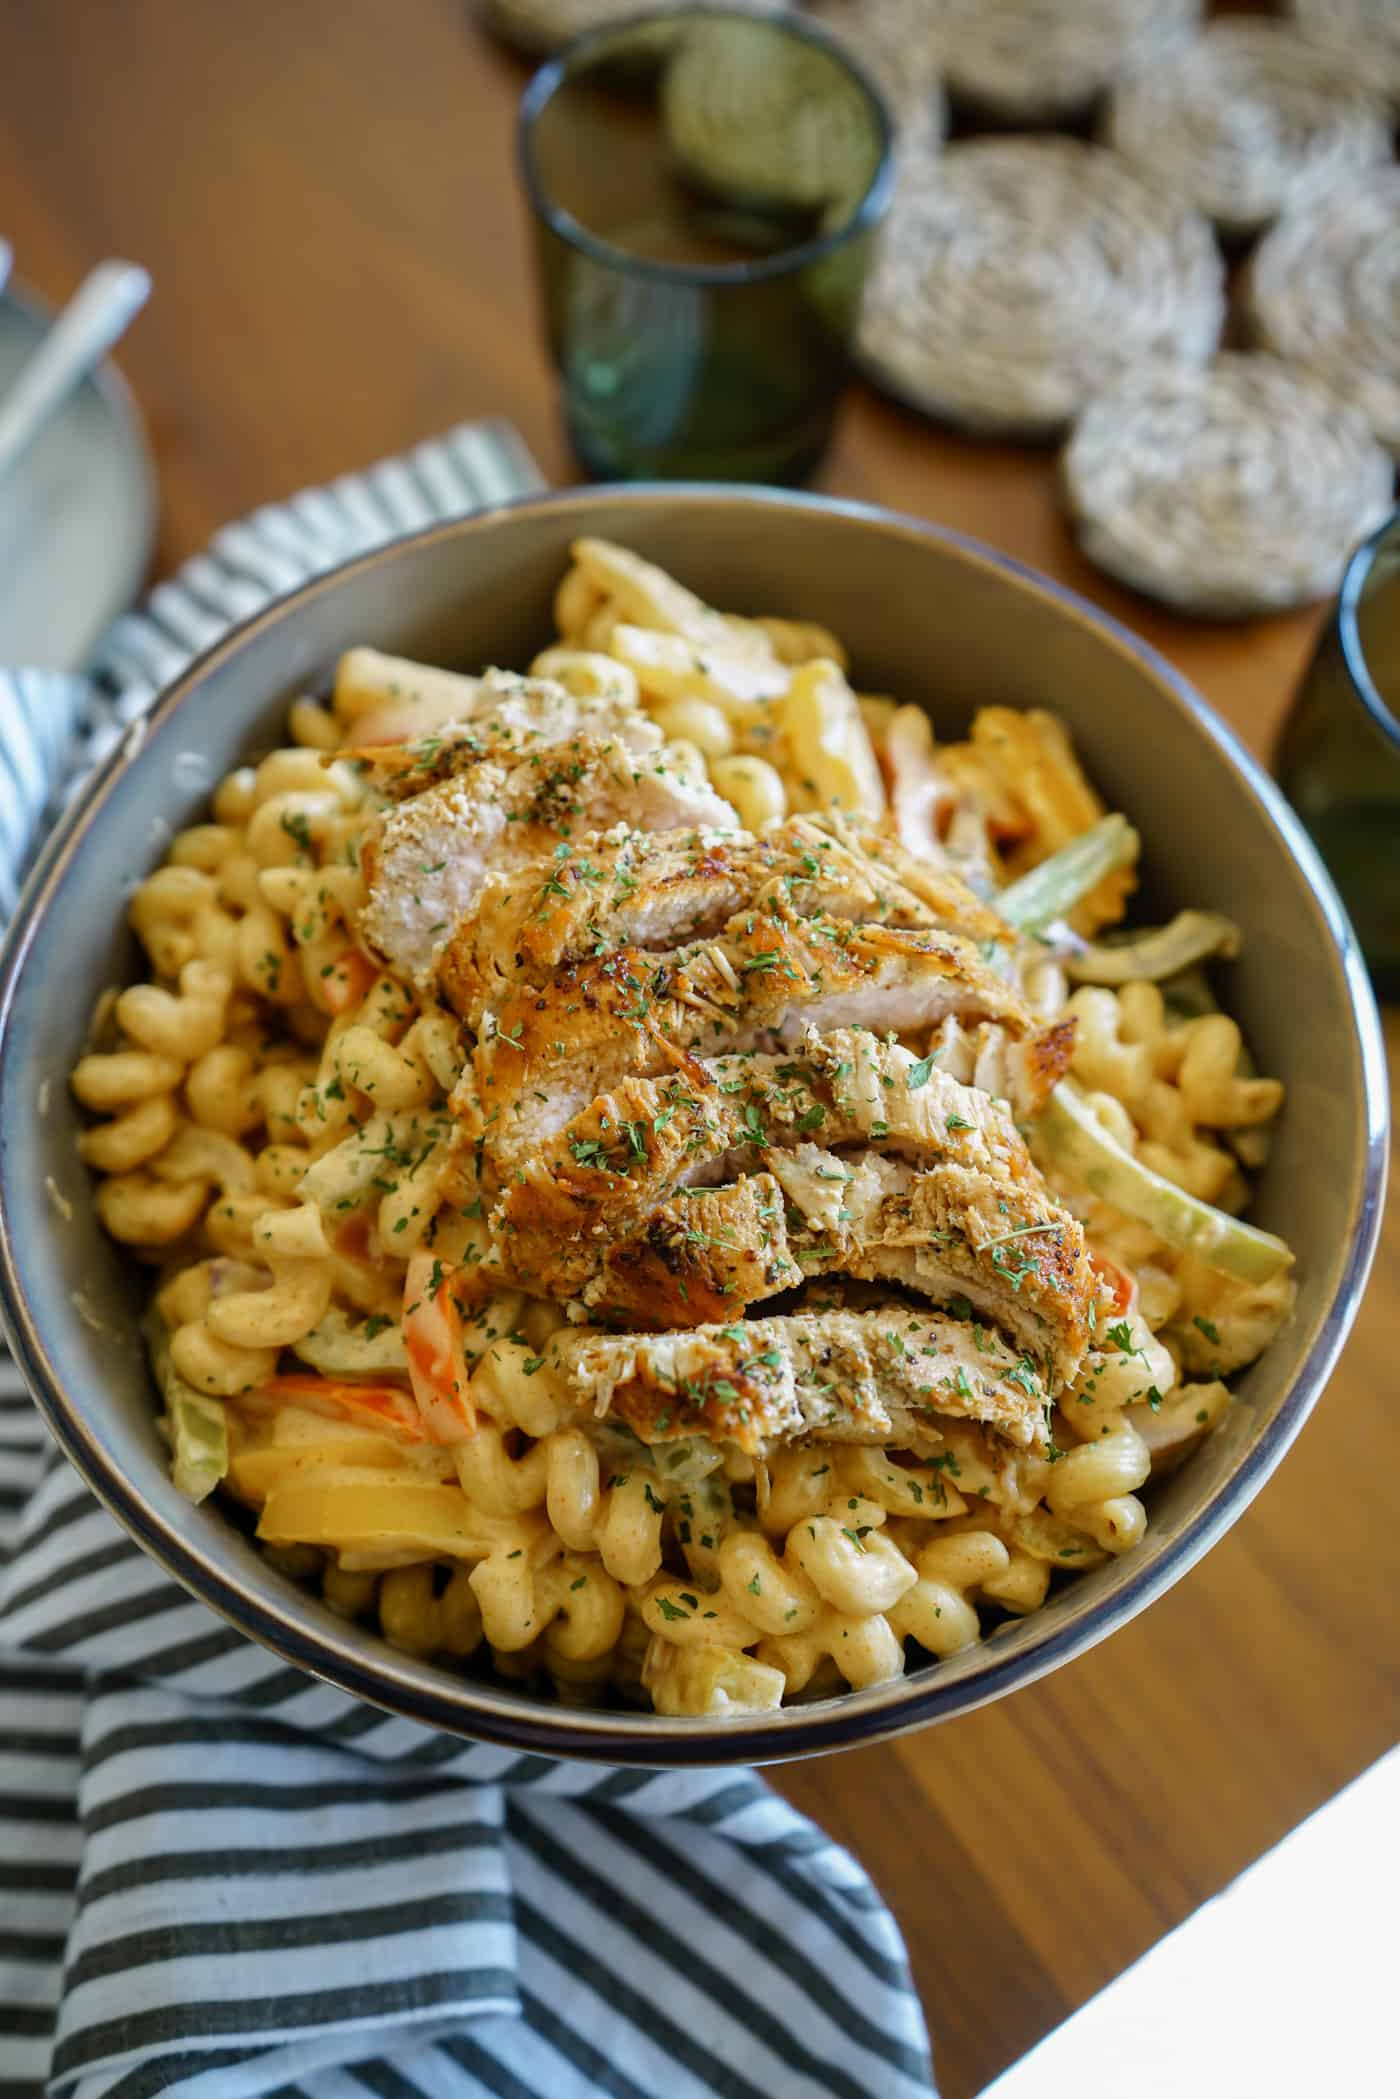 A large bowl of Instant Pot Chicken Fajita Pasta with bell peppers and onions.